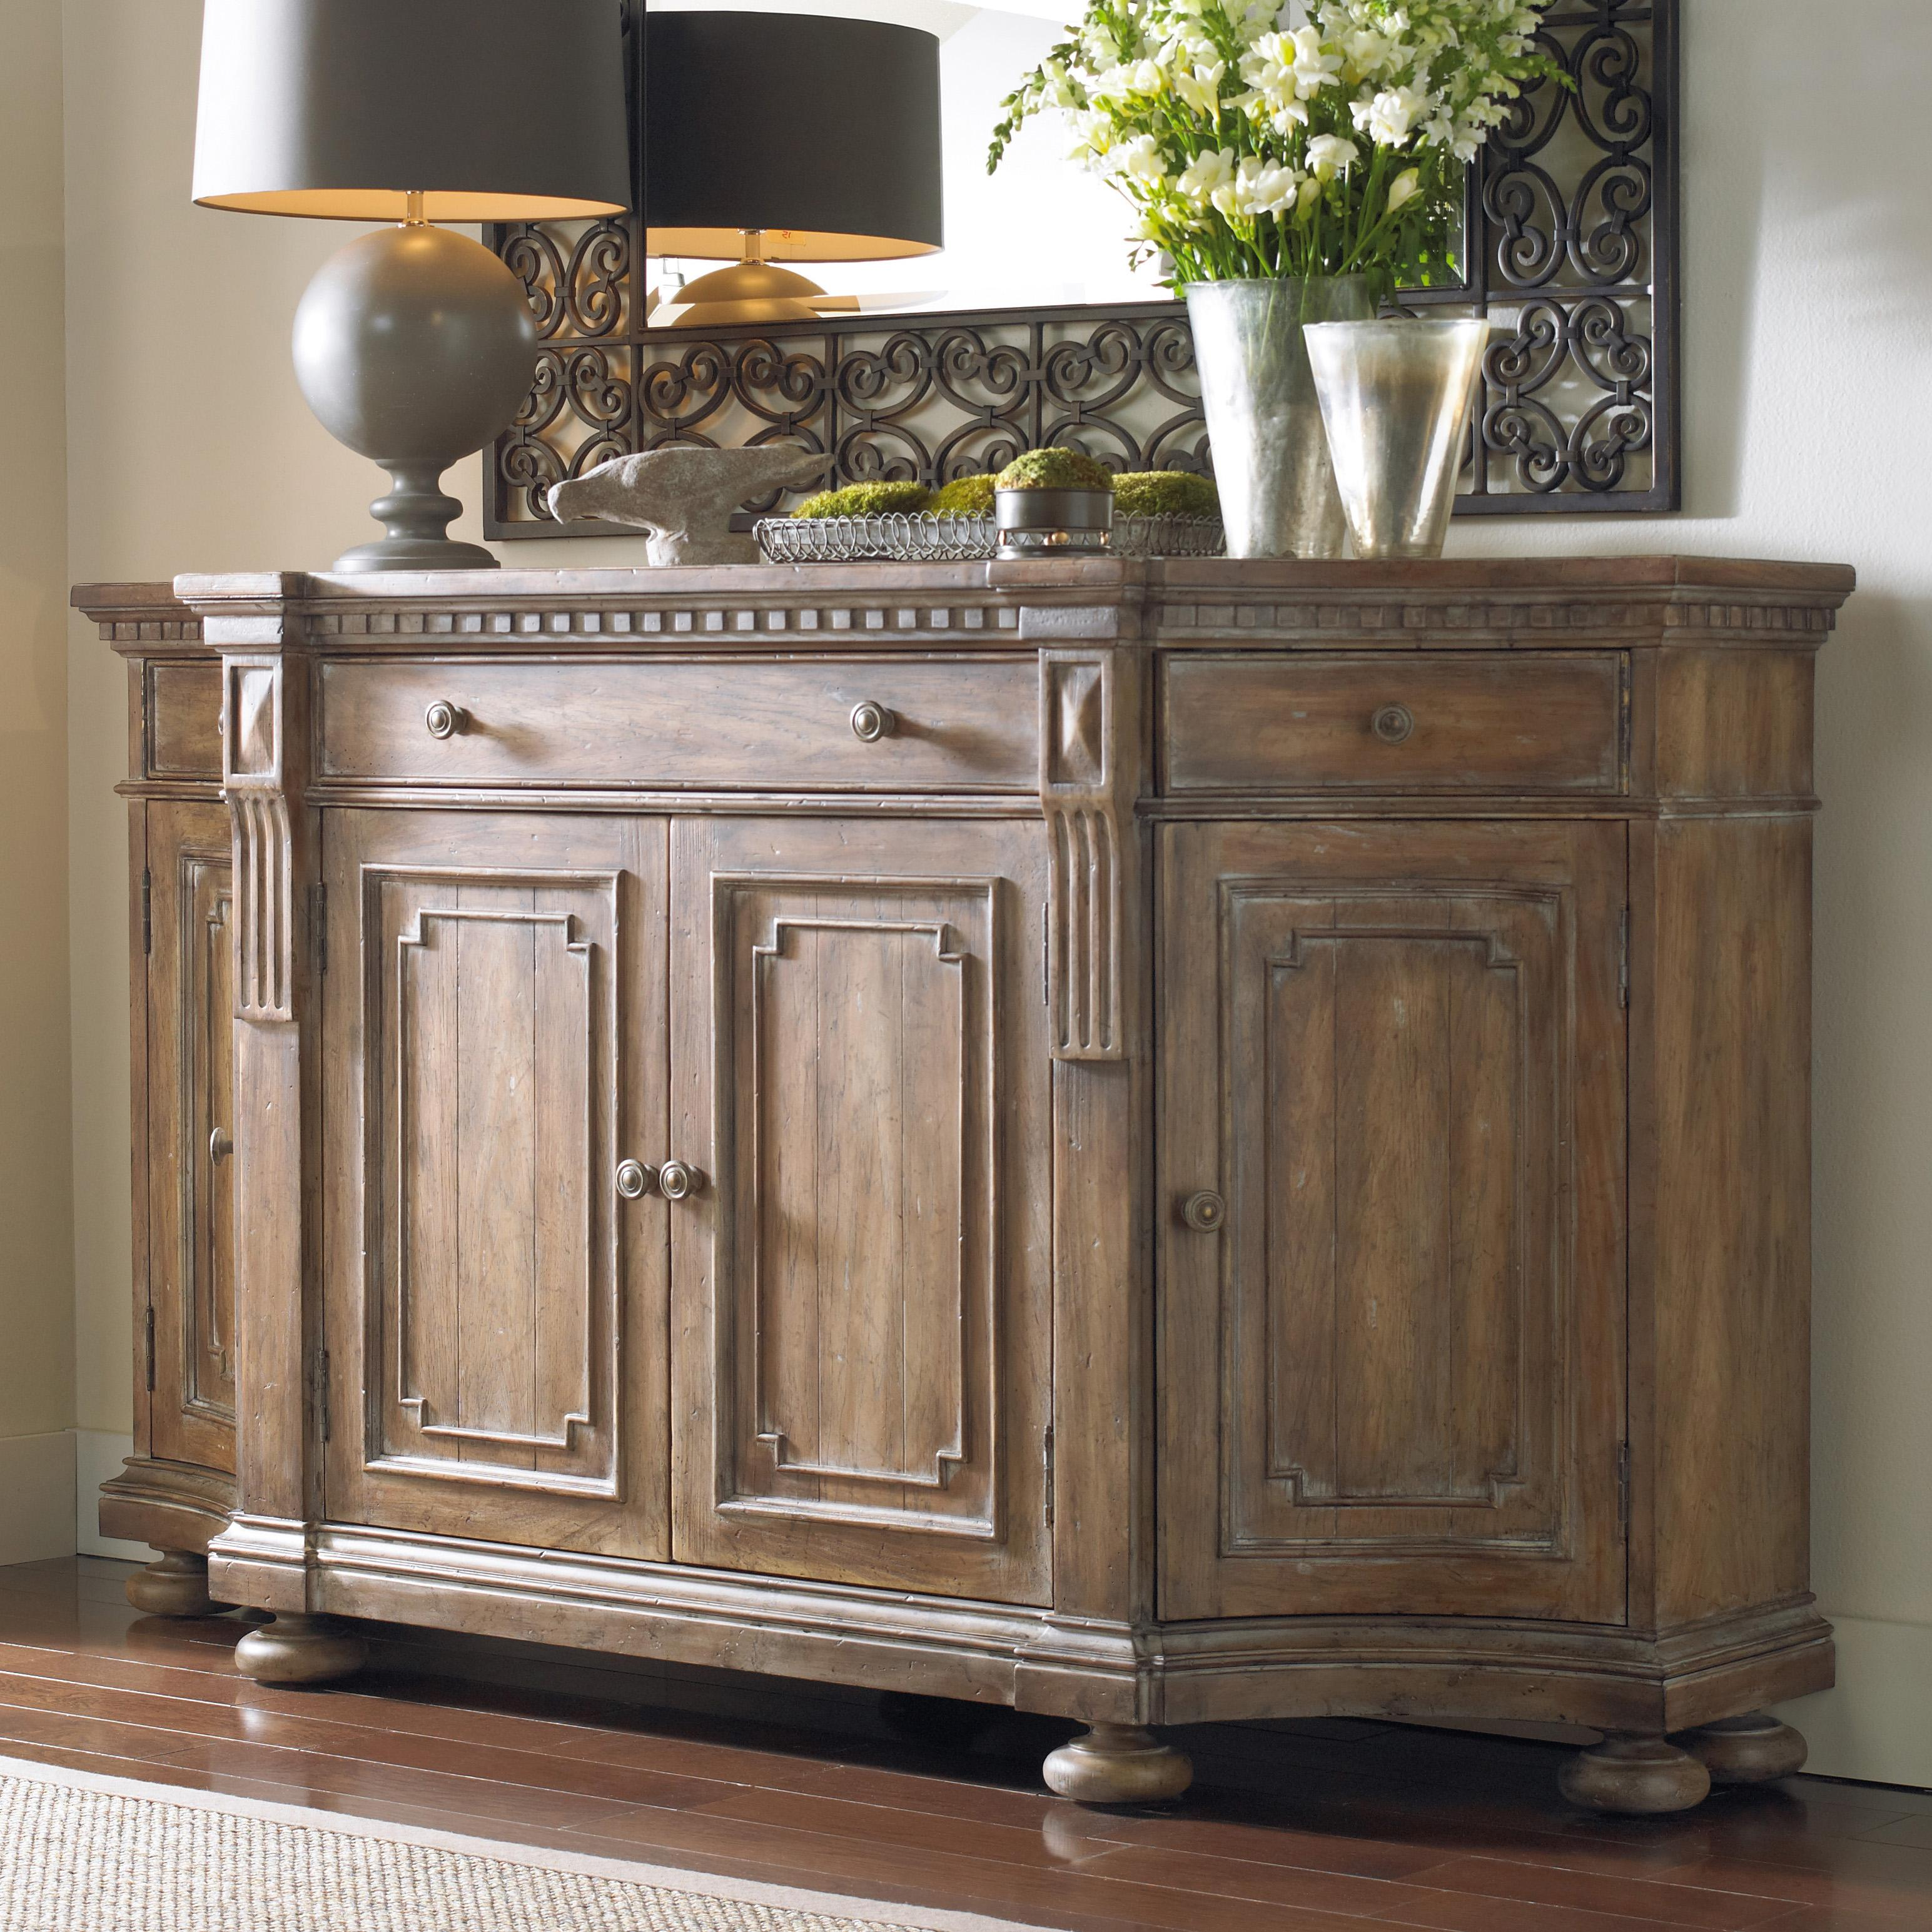 cadenza furniture. Credenza Furniture. Shaped With Concave Side Doors, Decorative Panels And Wooden Knob Pull Cadenza Furniture